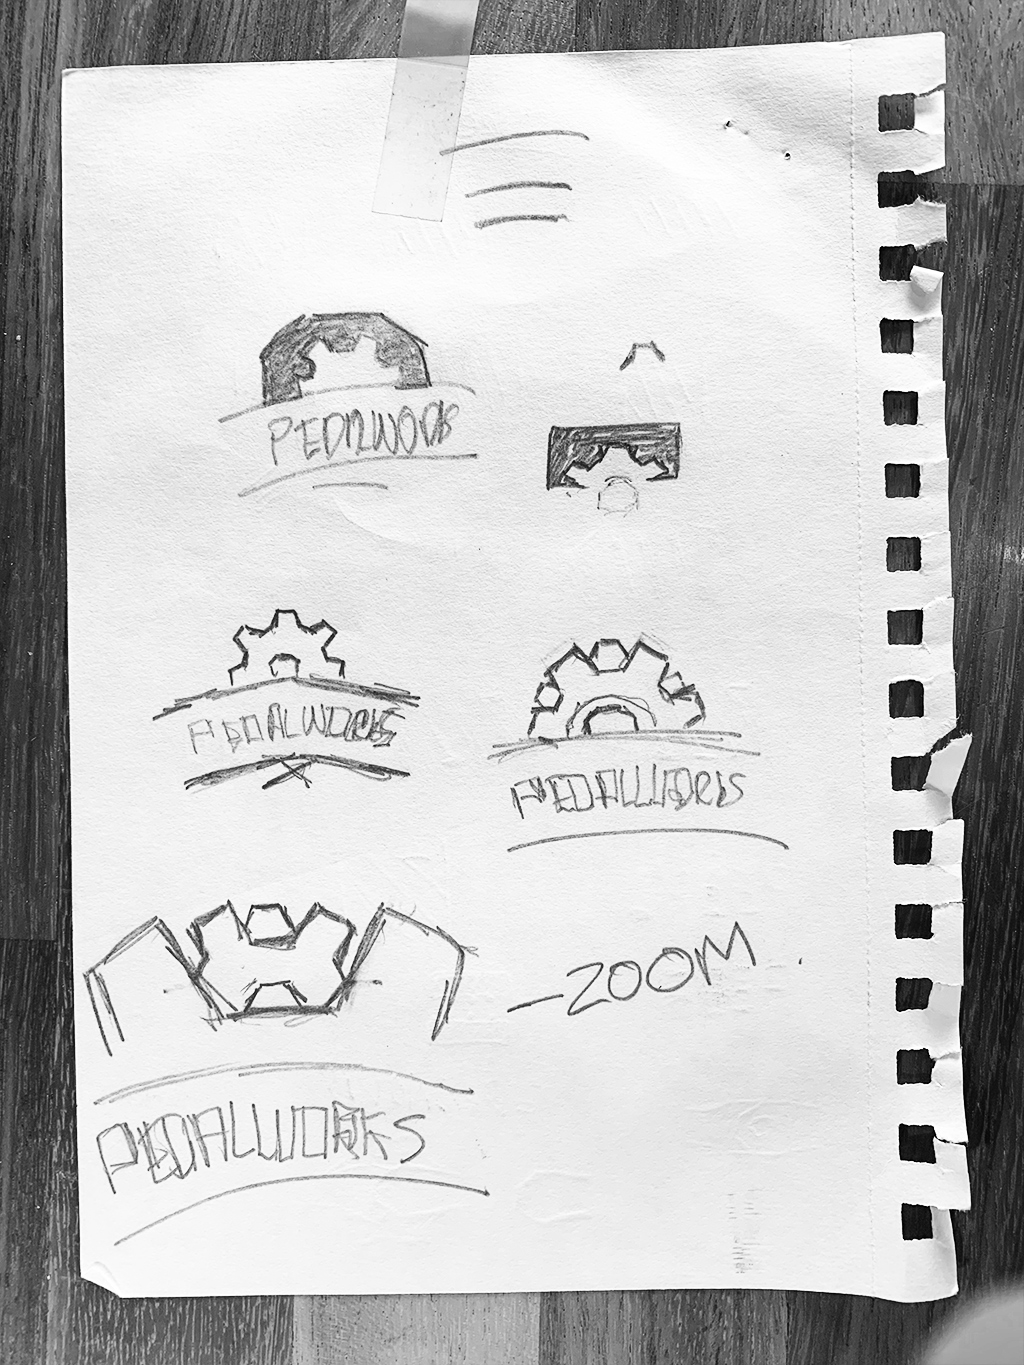 PedalWorks Bike Shop Logo Sketches by The Logo Smith